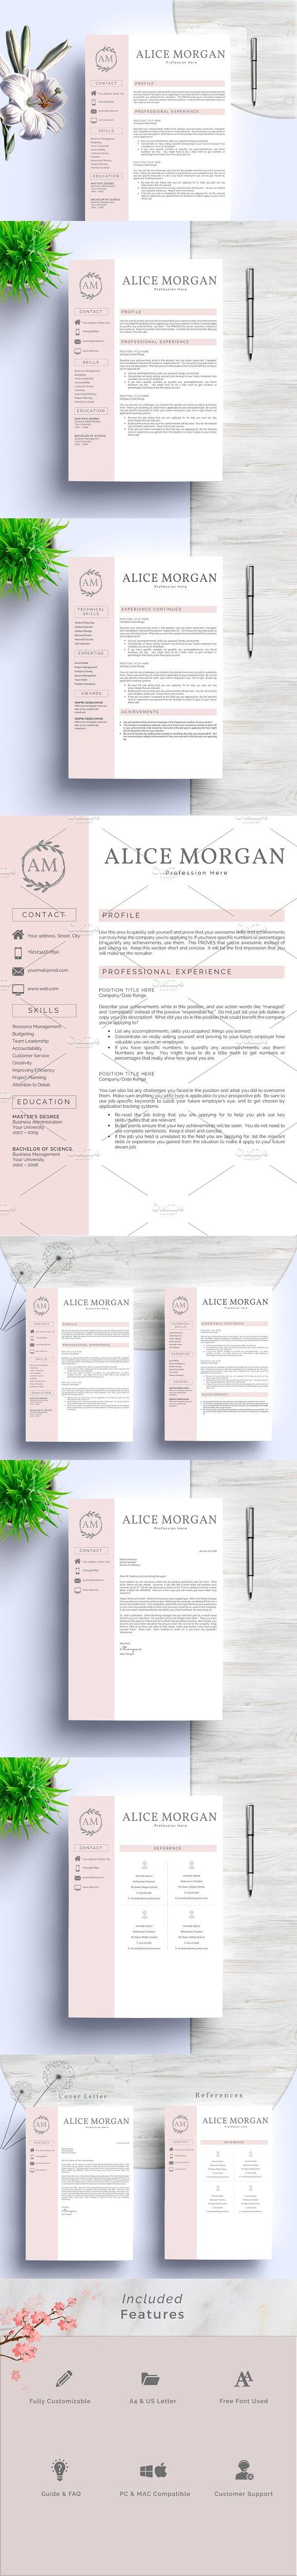 2 Pages Word Resume Template. Resume Templates